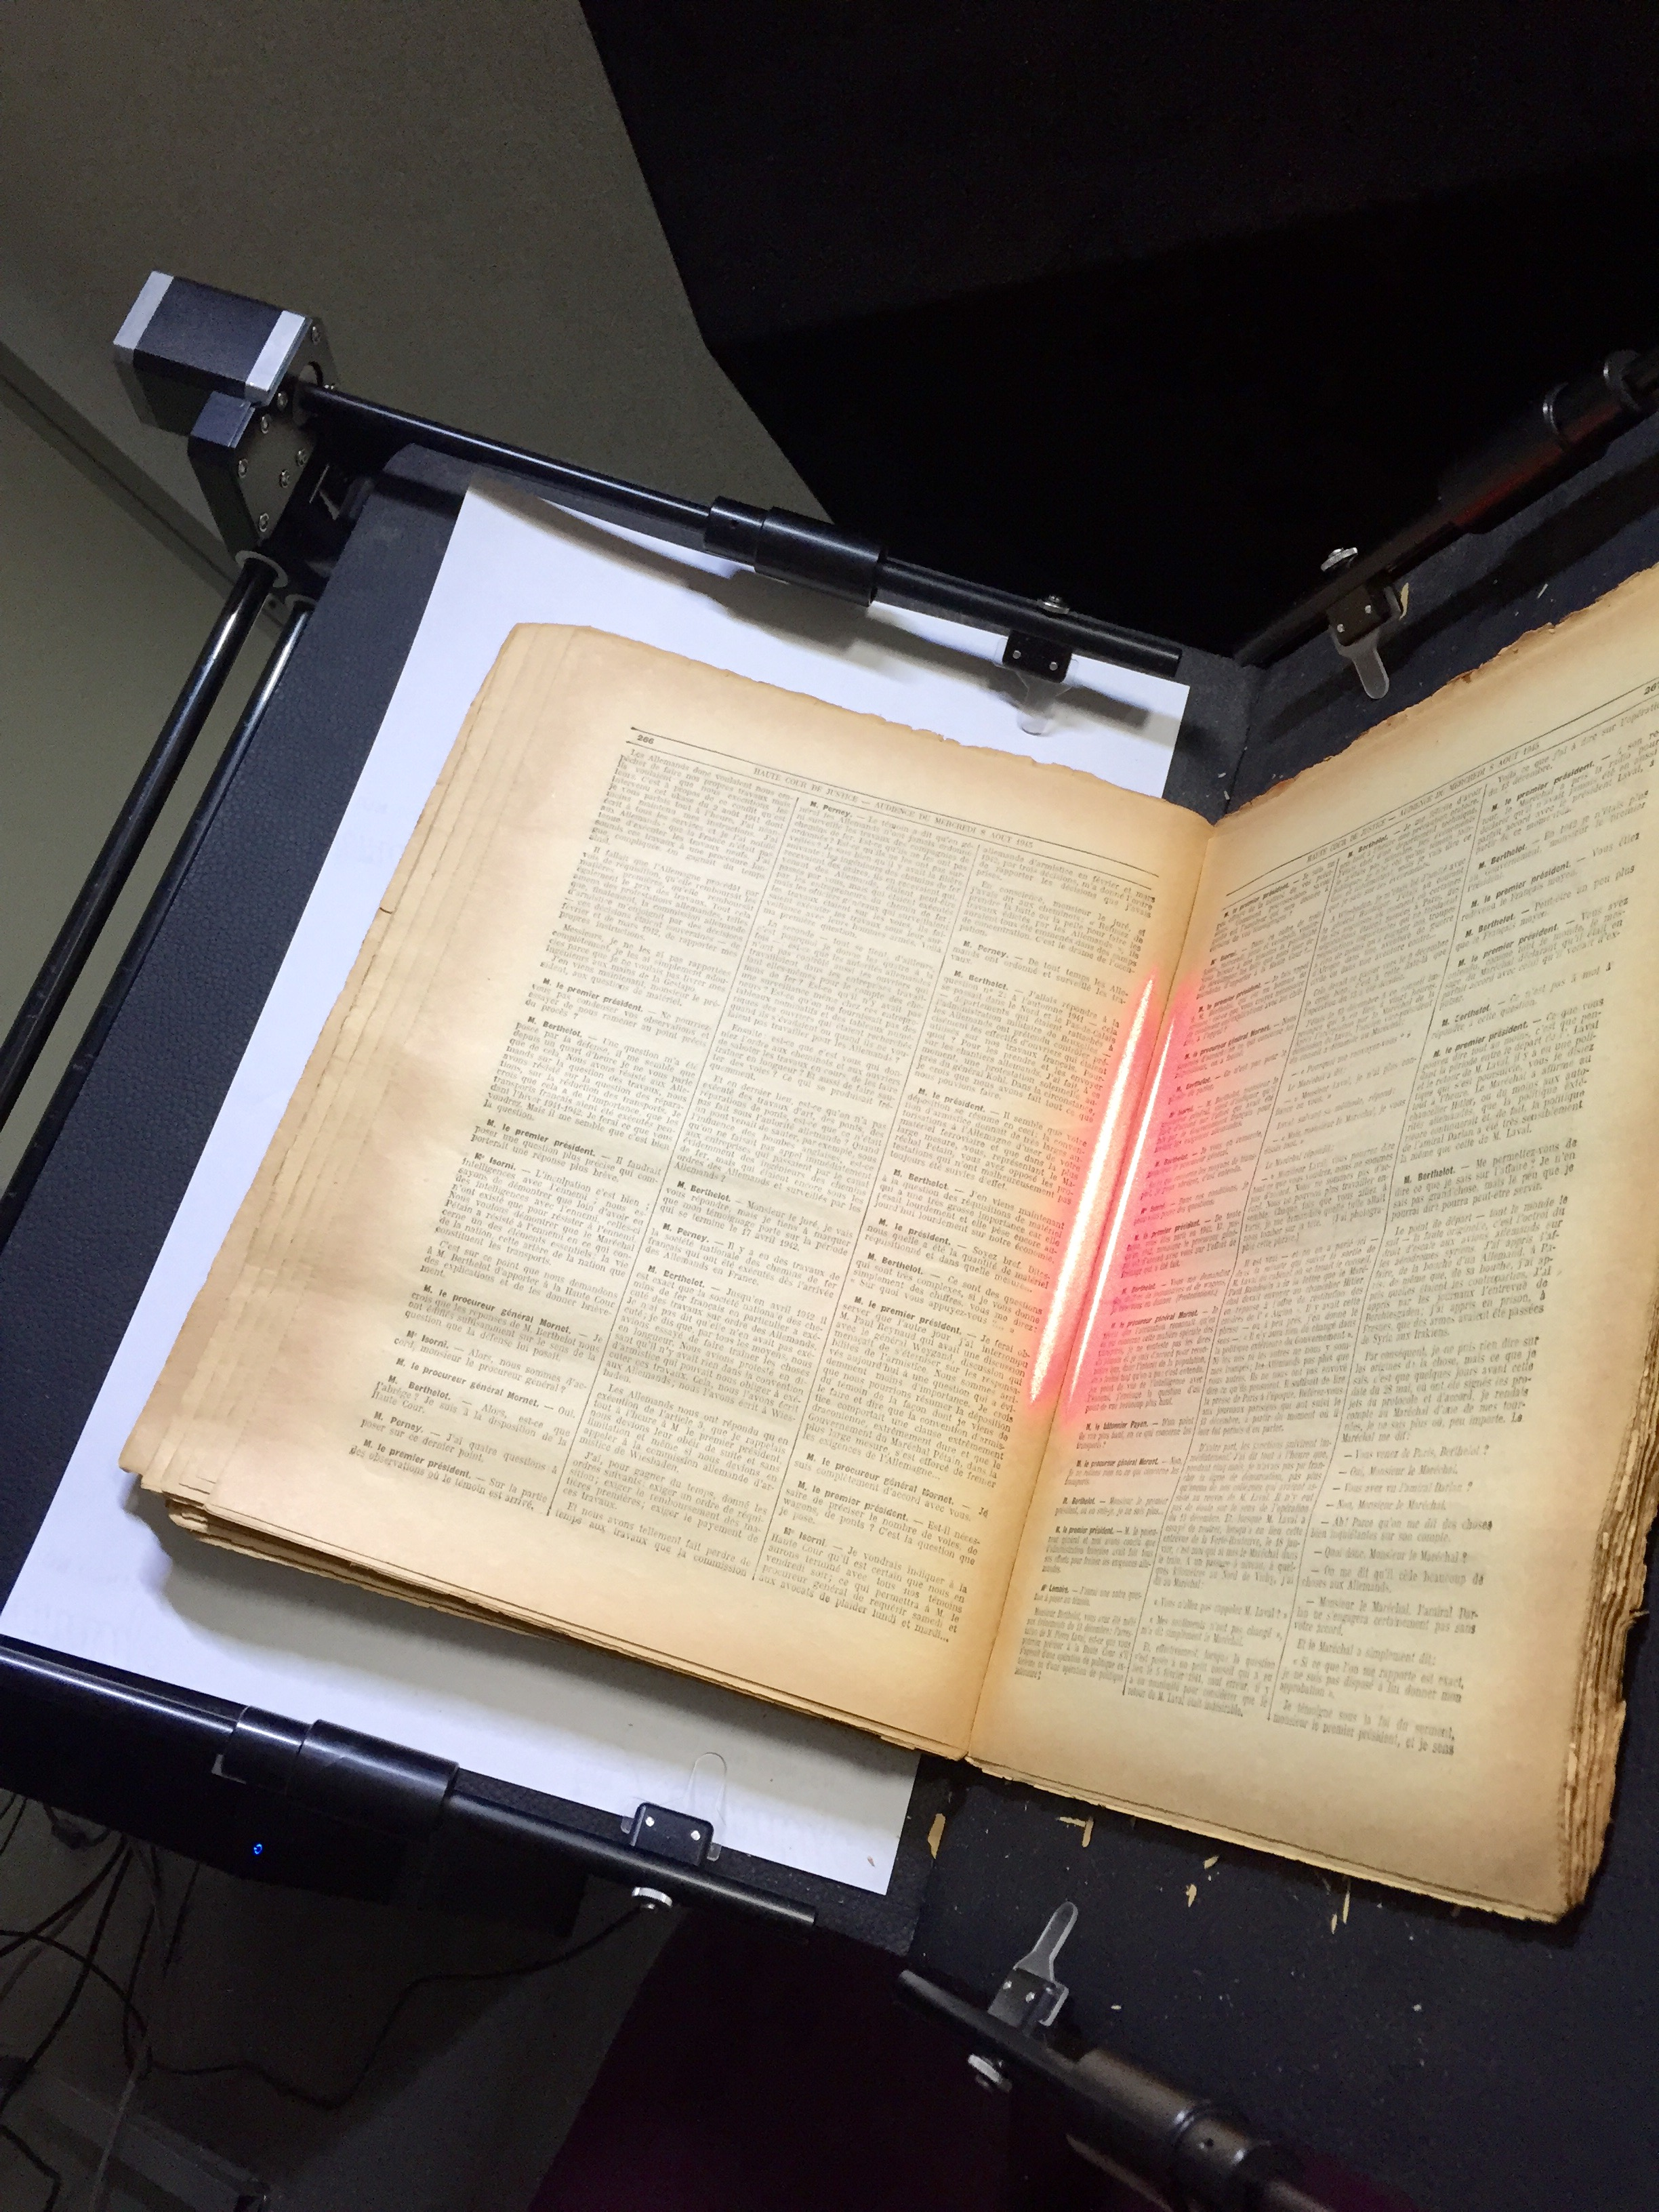 V-craddle to support digitization of fragile bound manuscripts